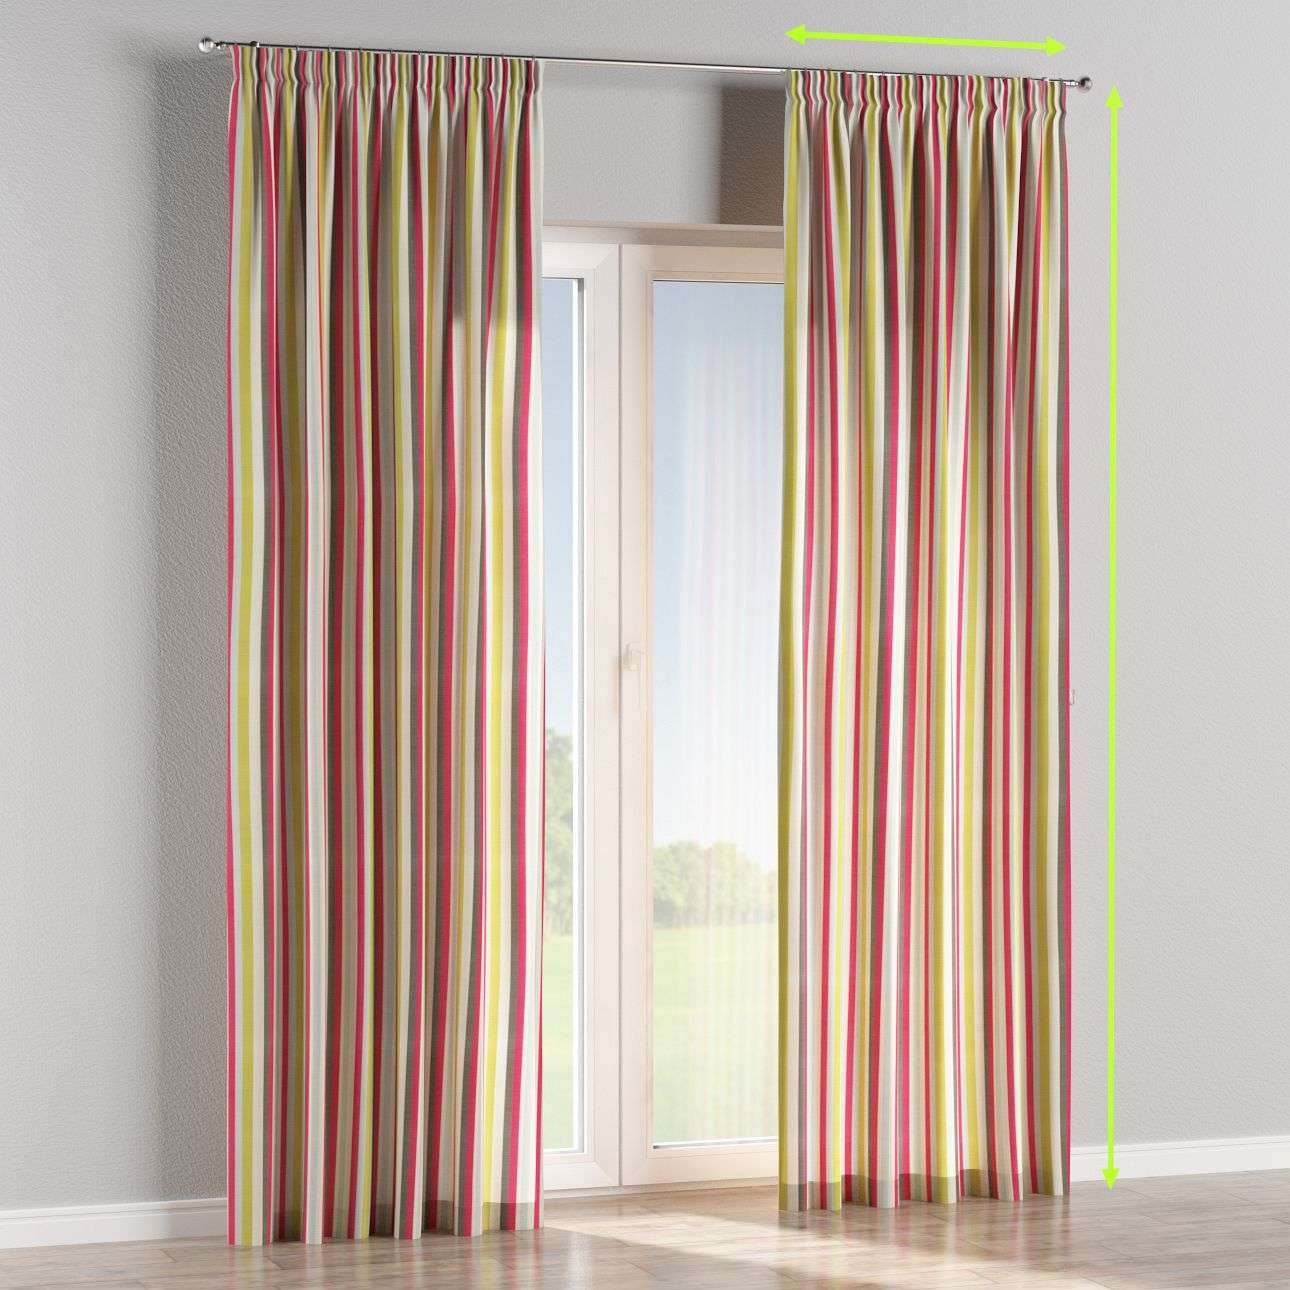 Pencil pleat lined curtains in collection Norge, fabric: 140-81